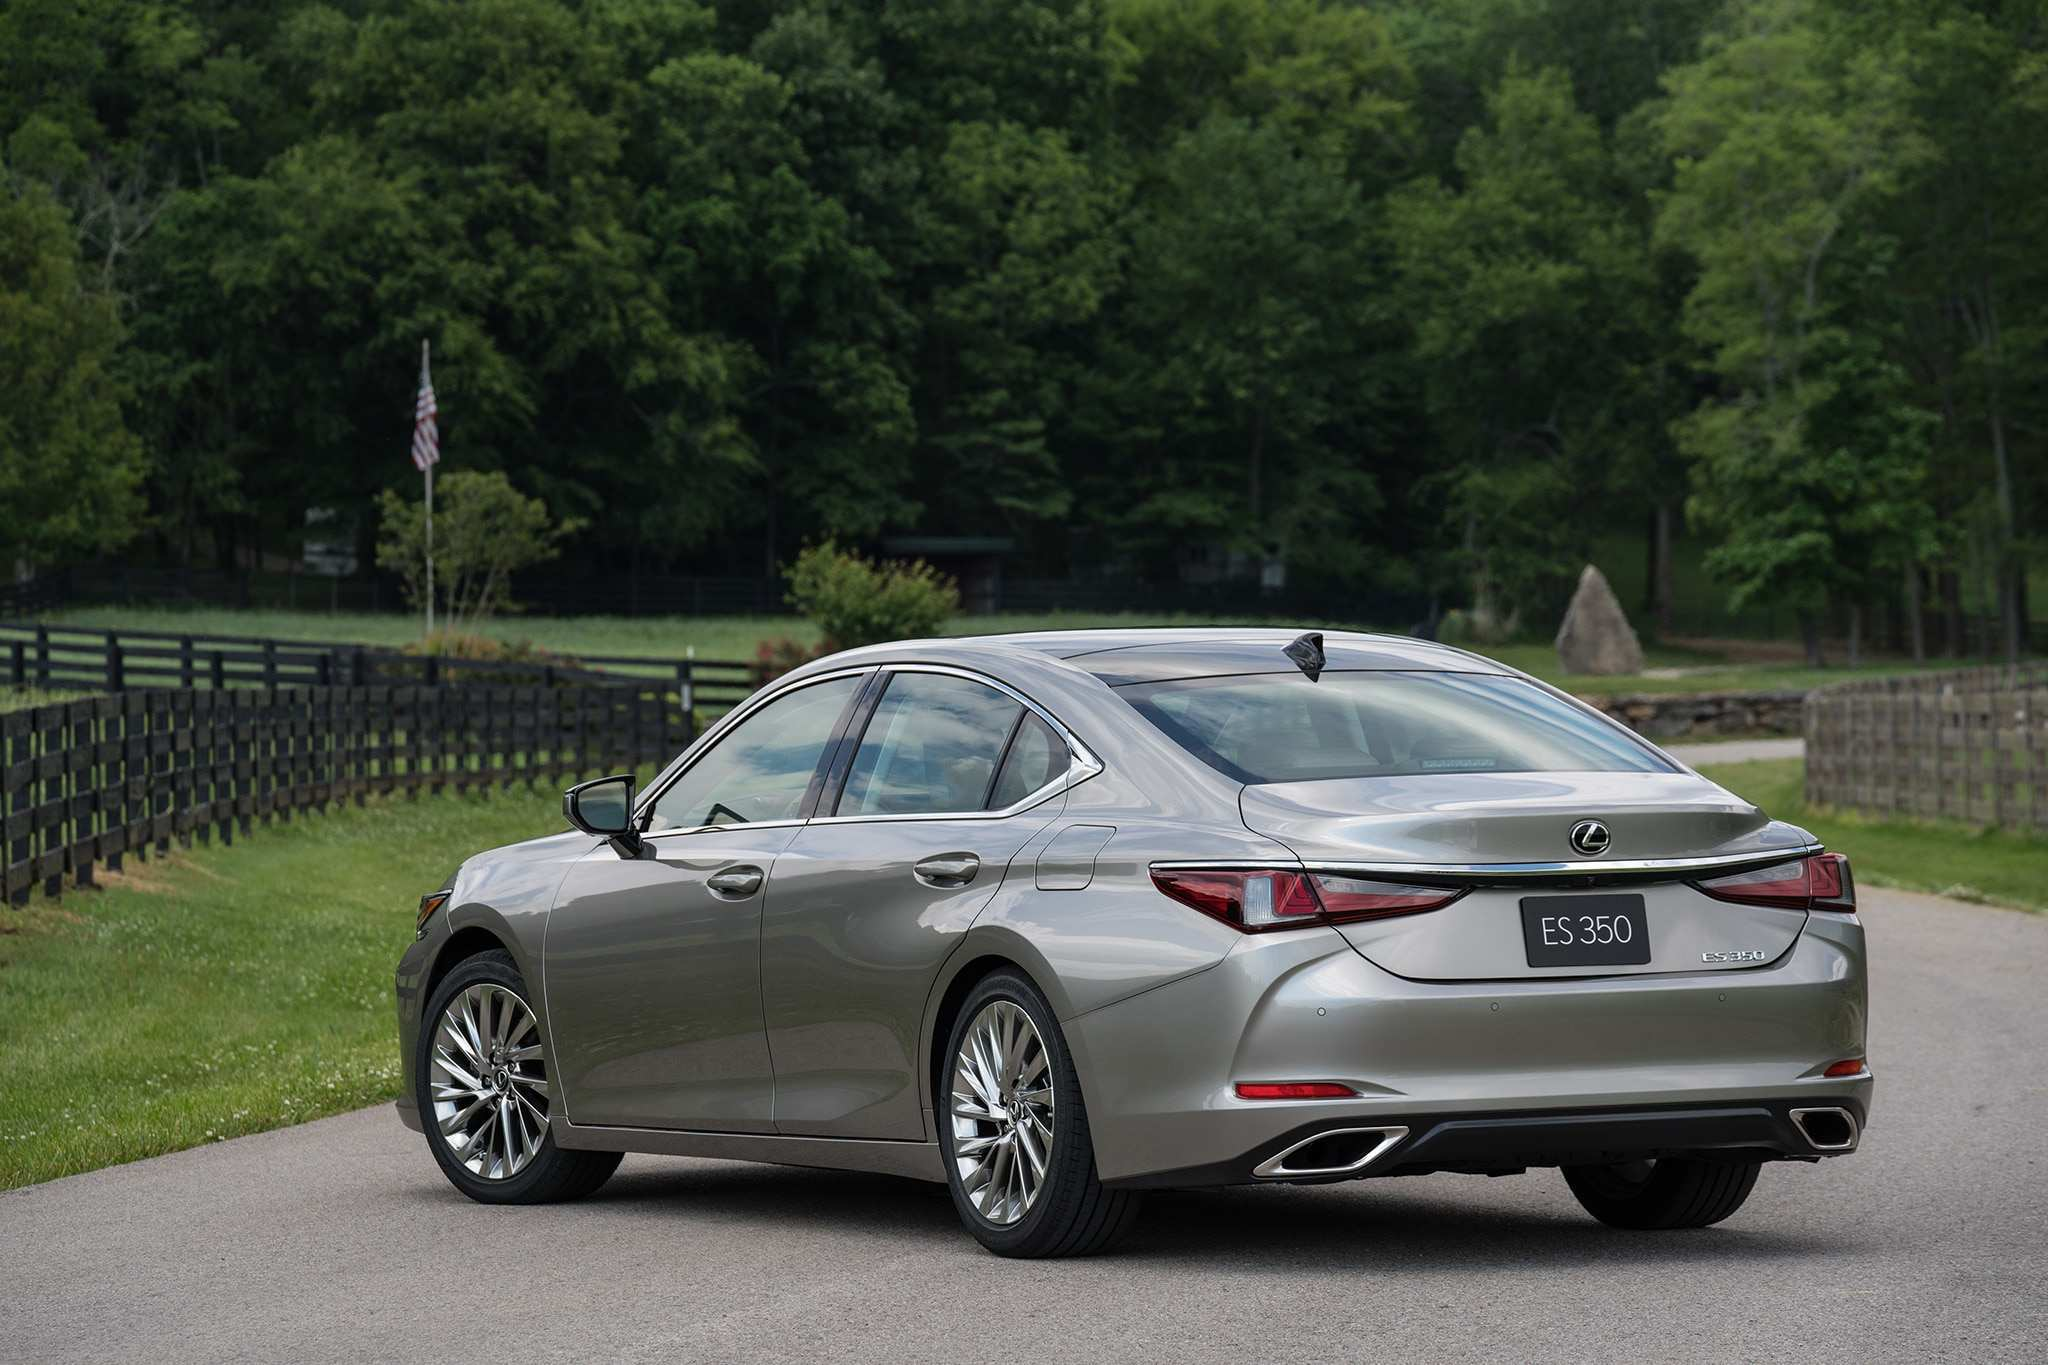 68 Great 2019 Lexus Es Awd Release Date with 2019 Lexus Es Awd